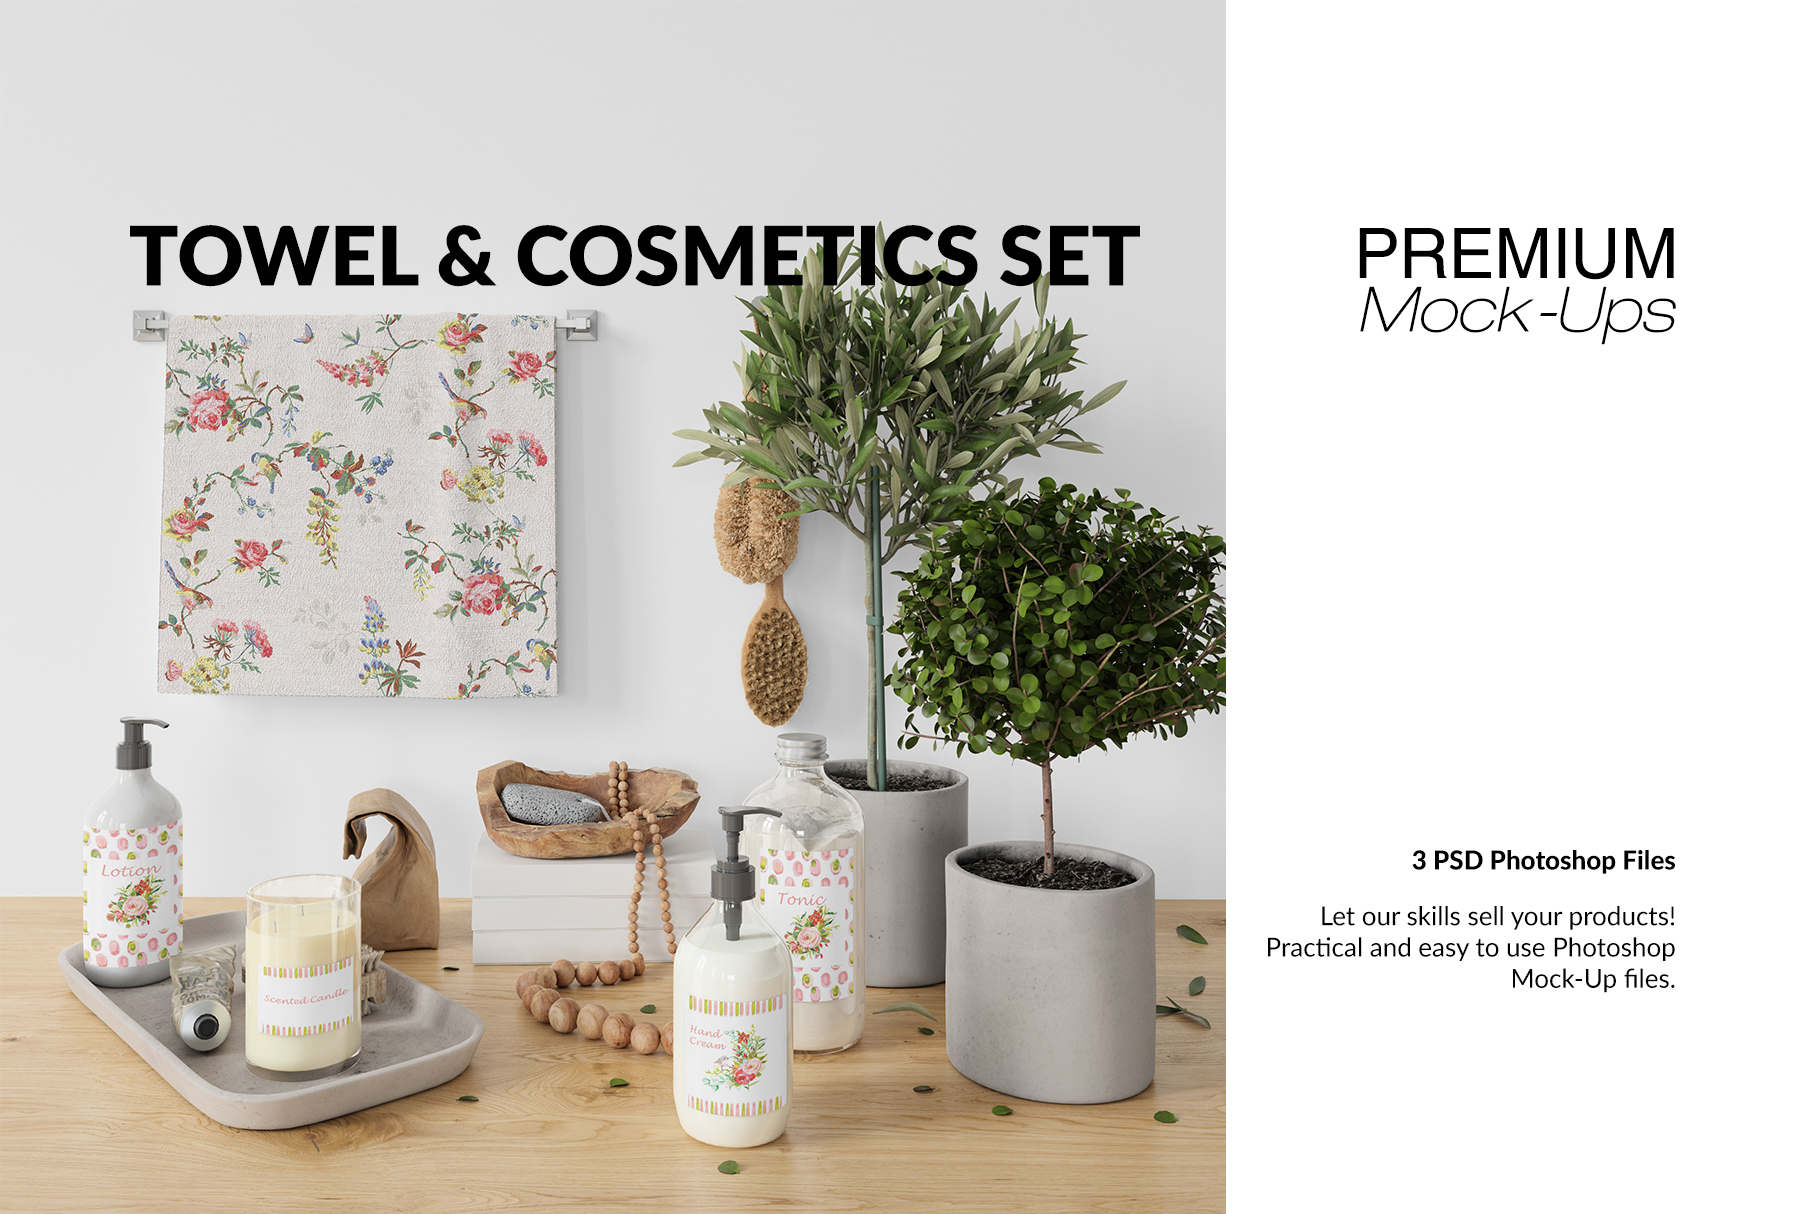 Towel & Cosmetics Mockup Set example image 1